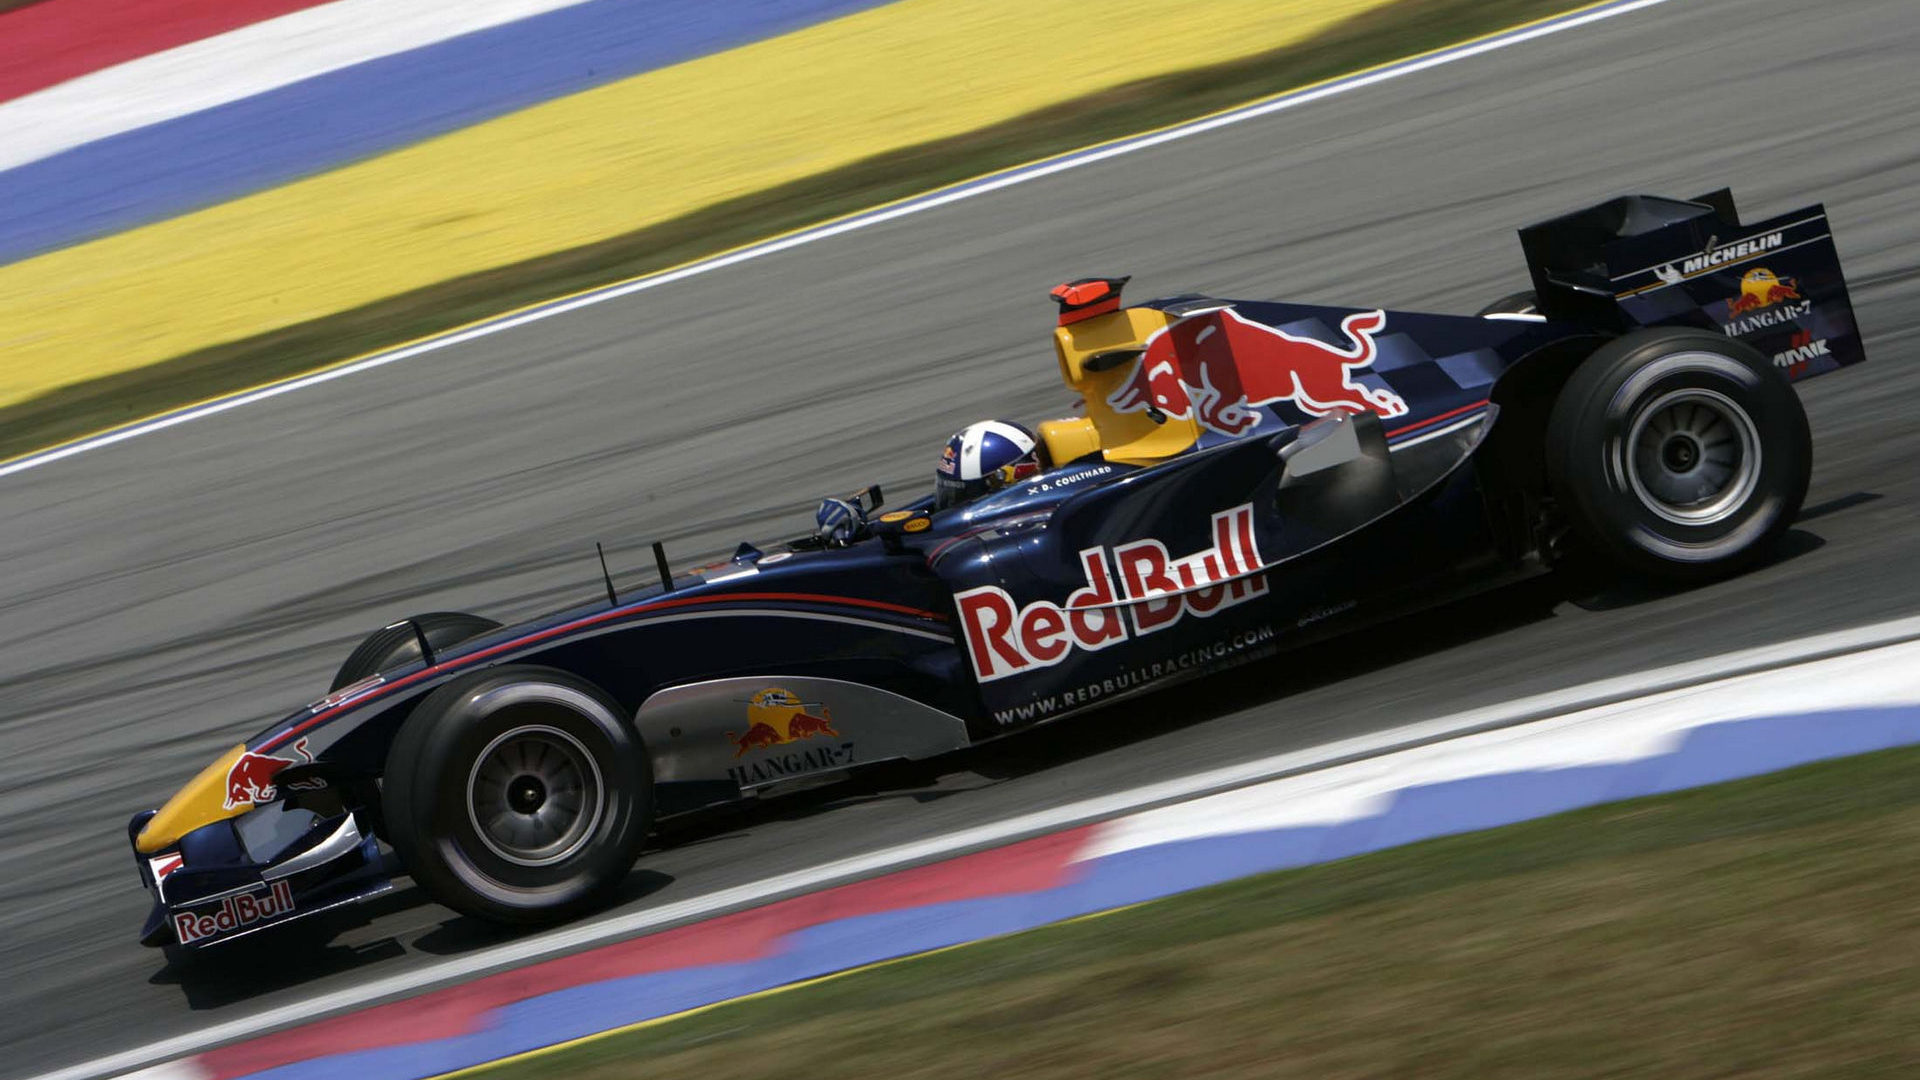 hd wallpapers 2005 formula 1 grand prix of malaysia | f1-fansite